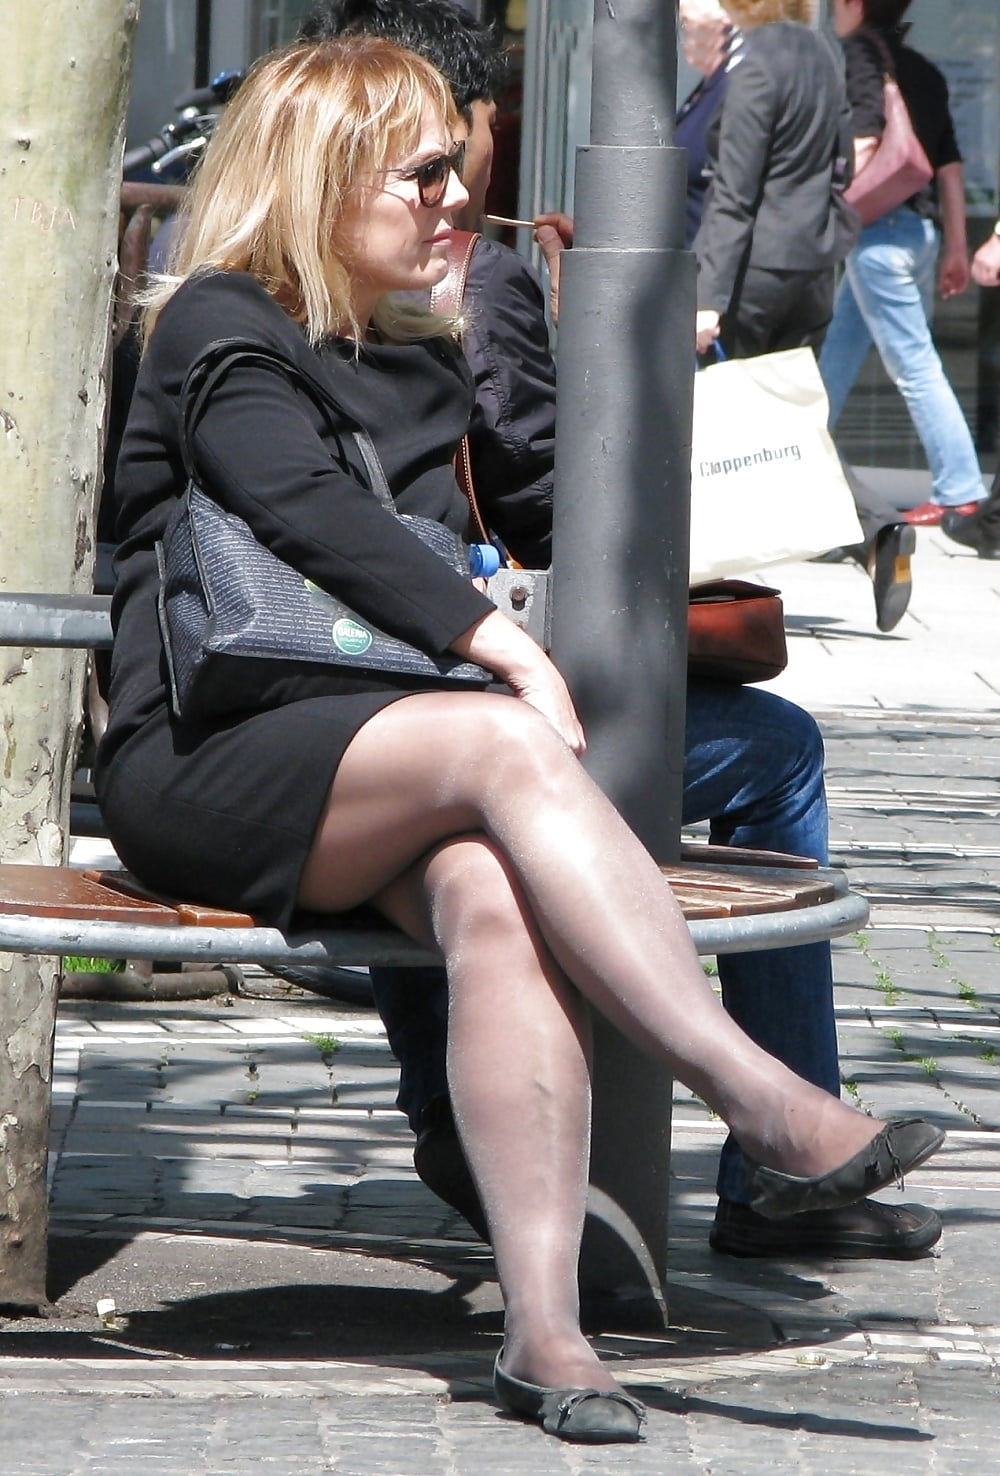 candid street pantyhose tights pics xhamster com